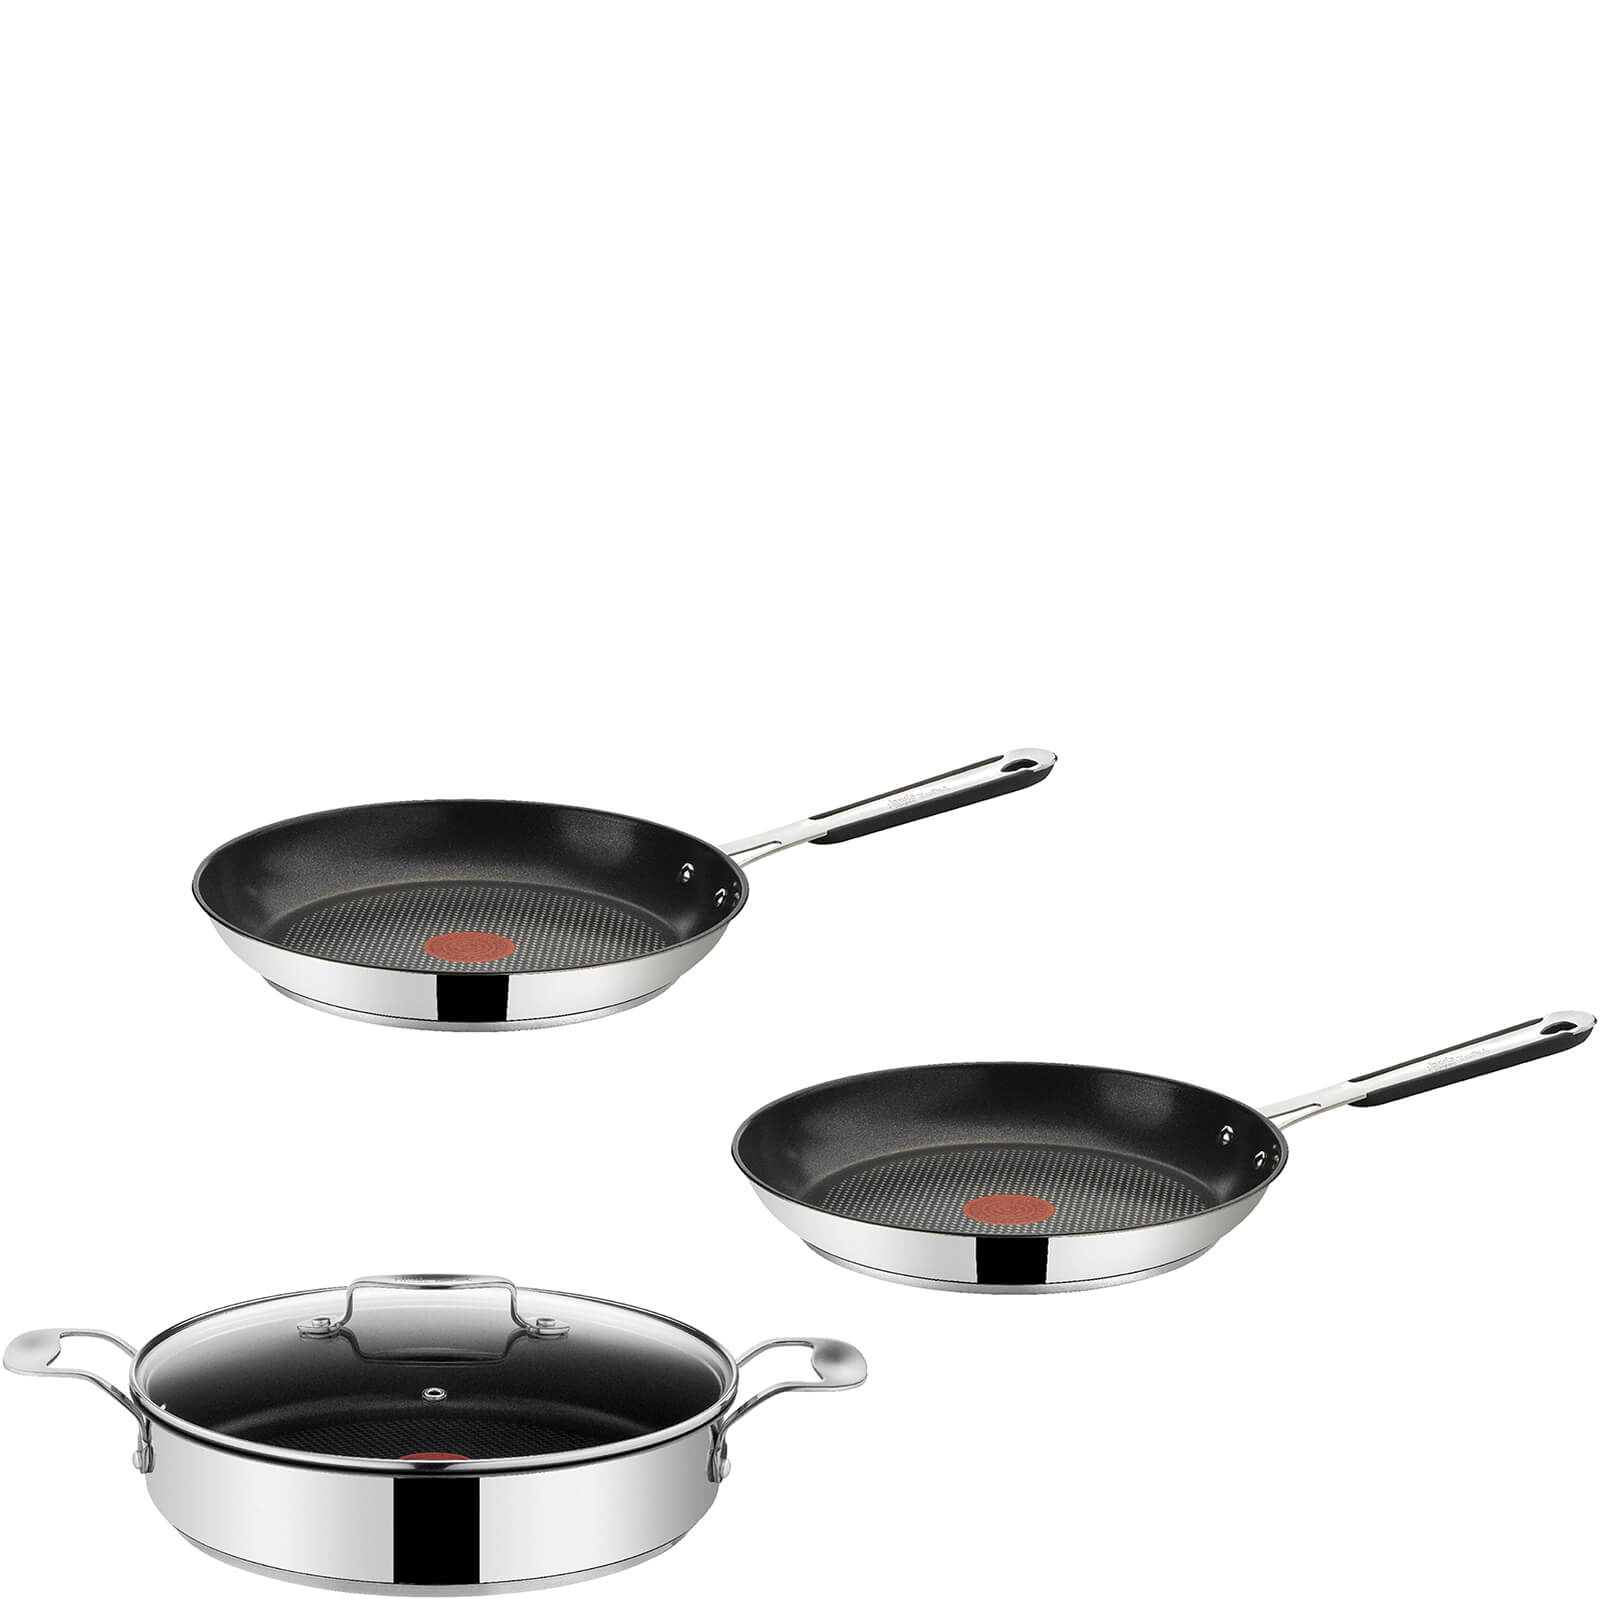 jamie oliver by tefal stainless steel 3 piece frying pan. Black Bedroom Furniture Sets. Home Design Ideas